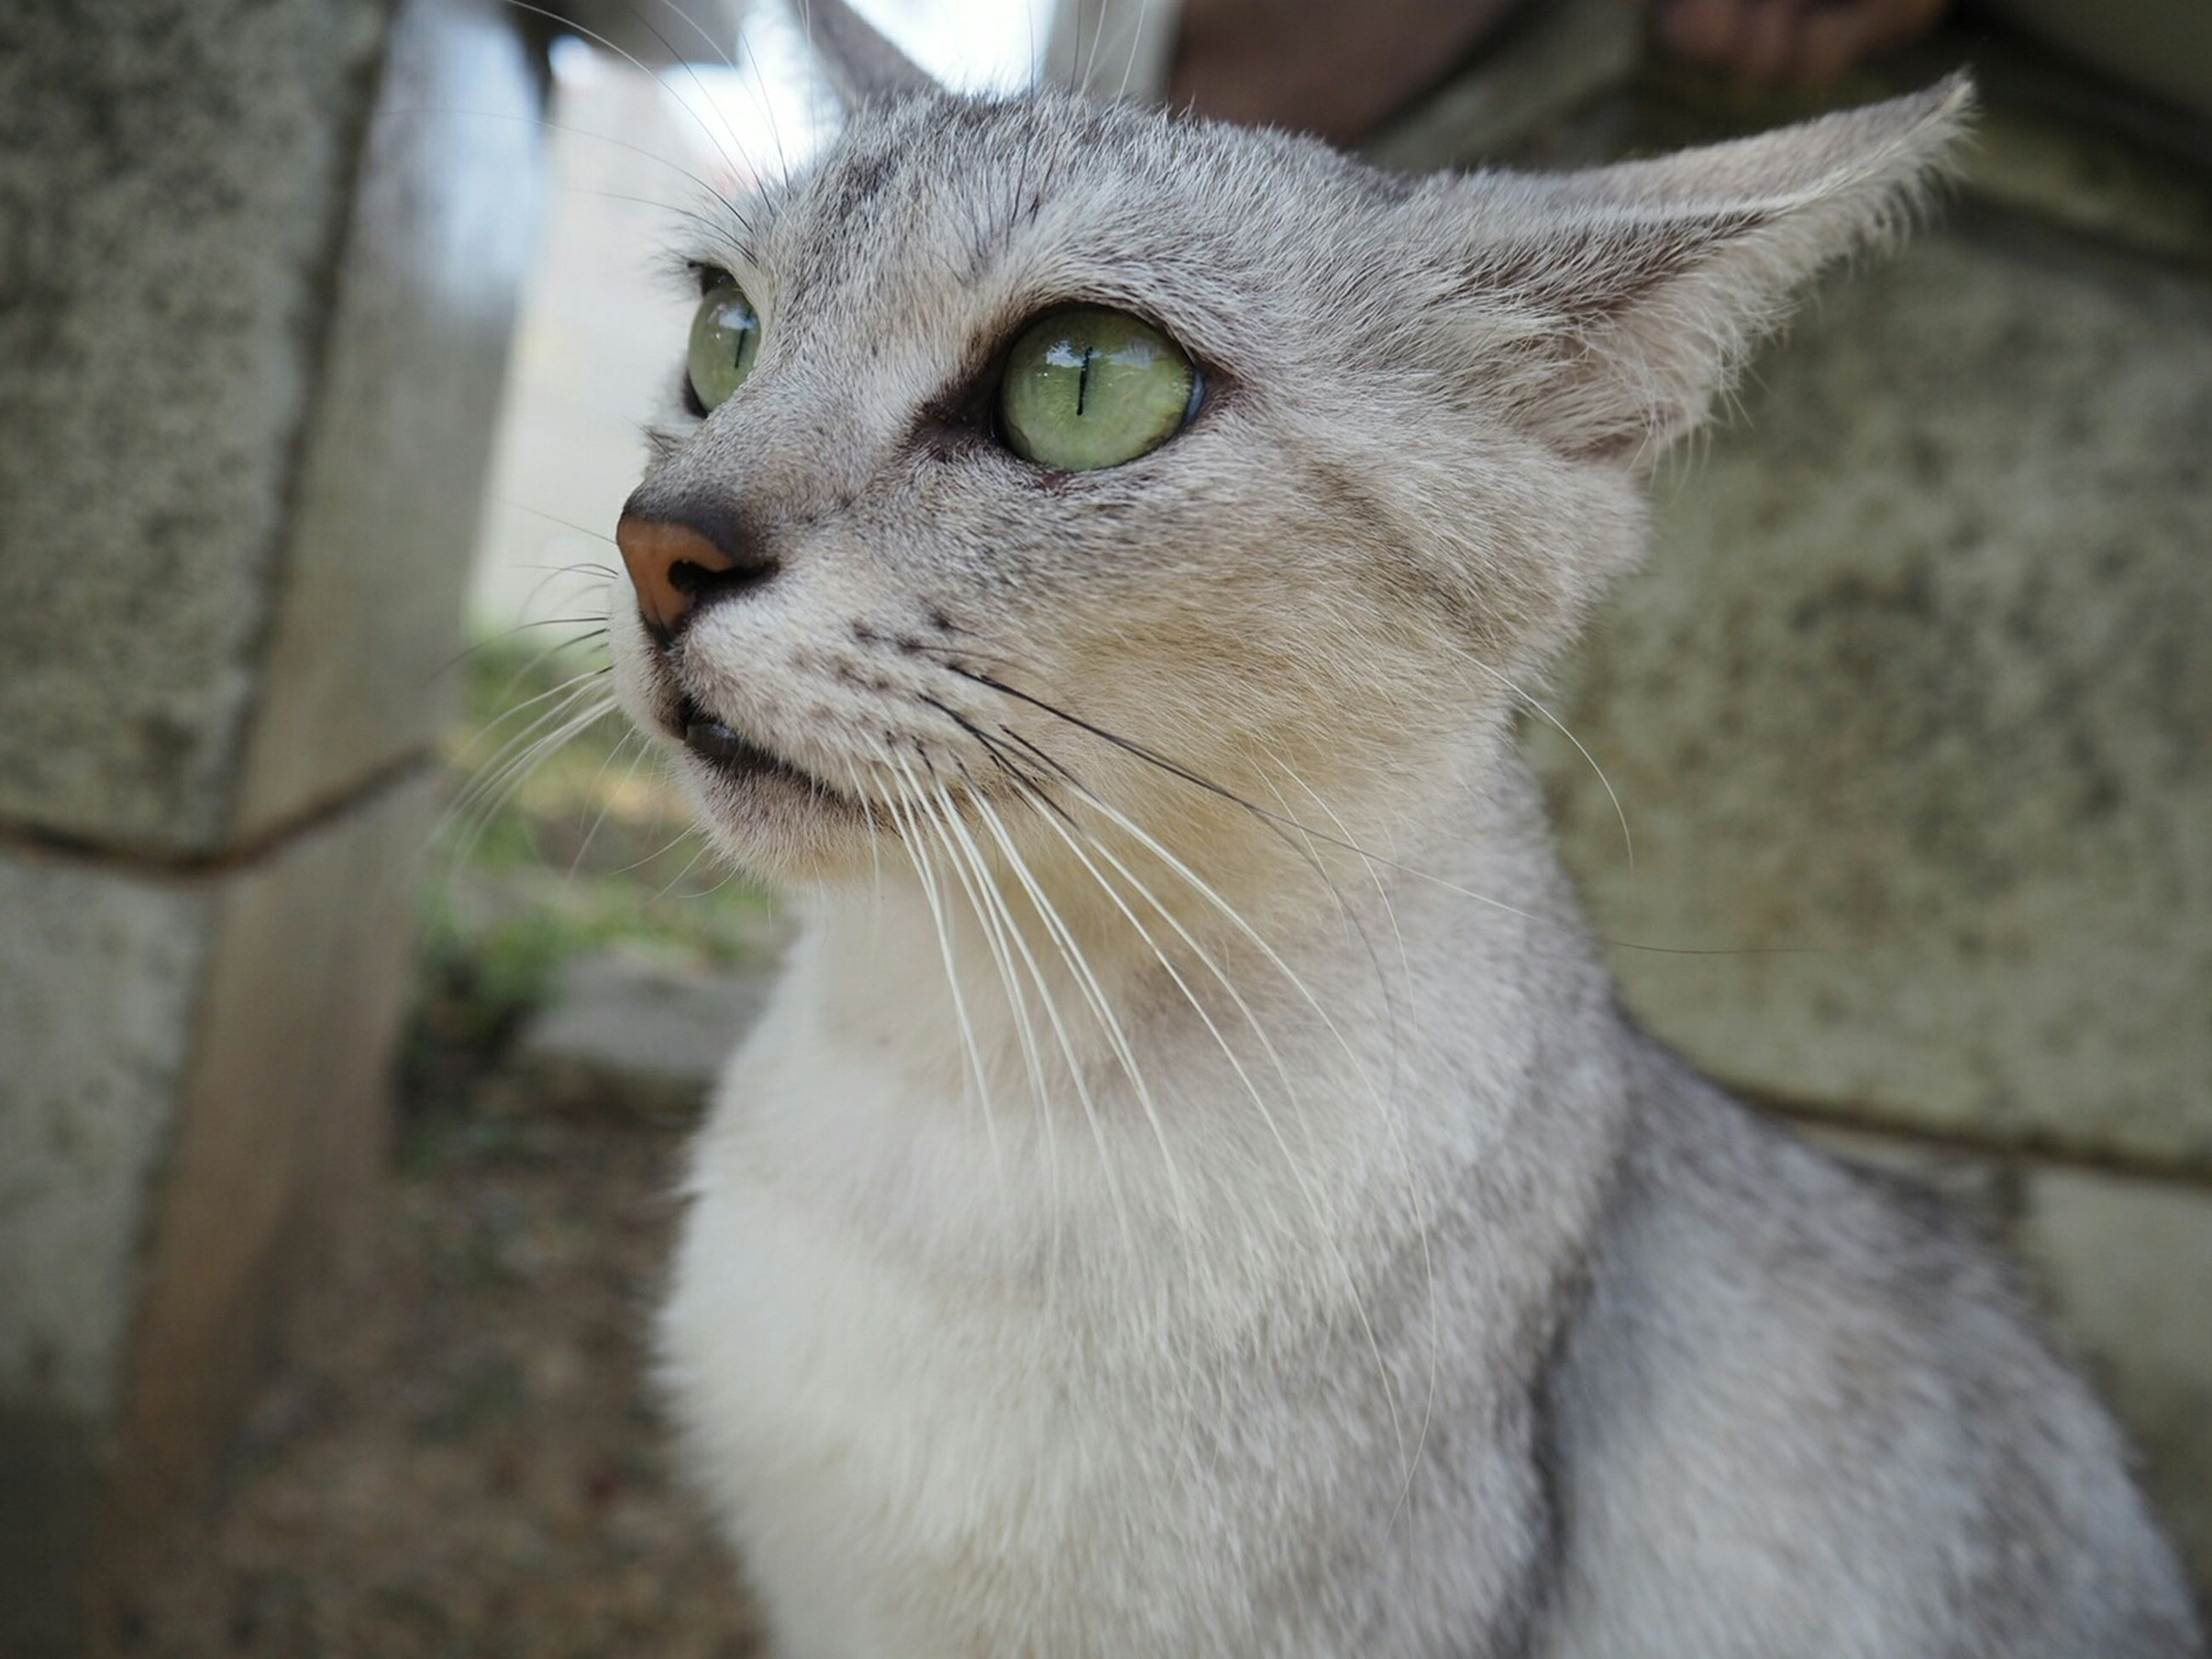 one animal, animal themes, domestic cat, pets, cat, mammal, feline, domestic animals, whisker, close-up, focus on foreground, looking away, portrait, animal head, alertness, animal eye, staring, selective focus, no people